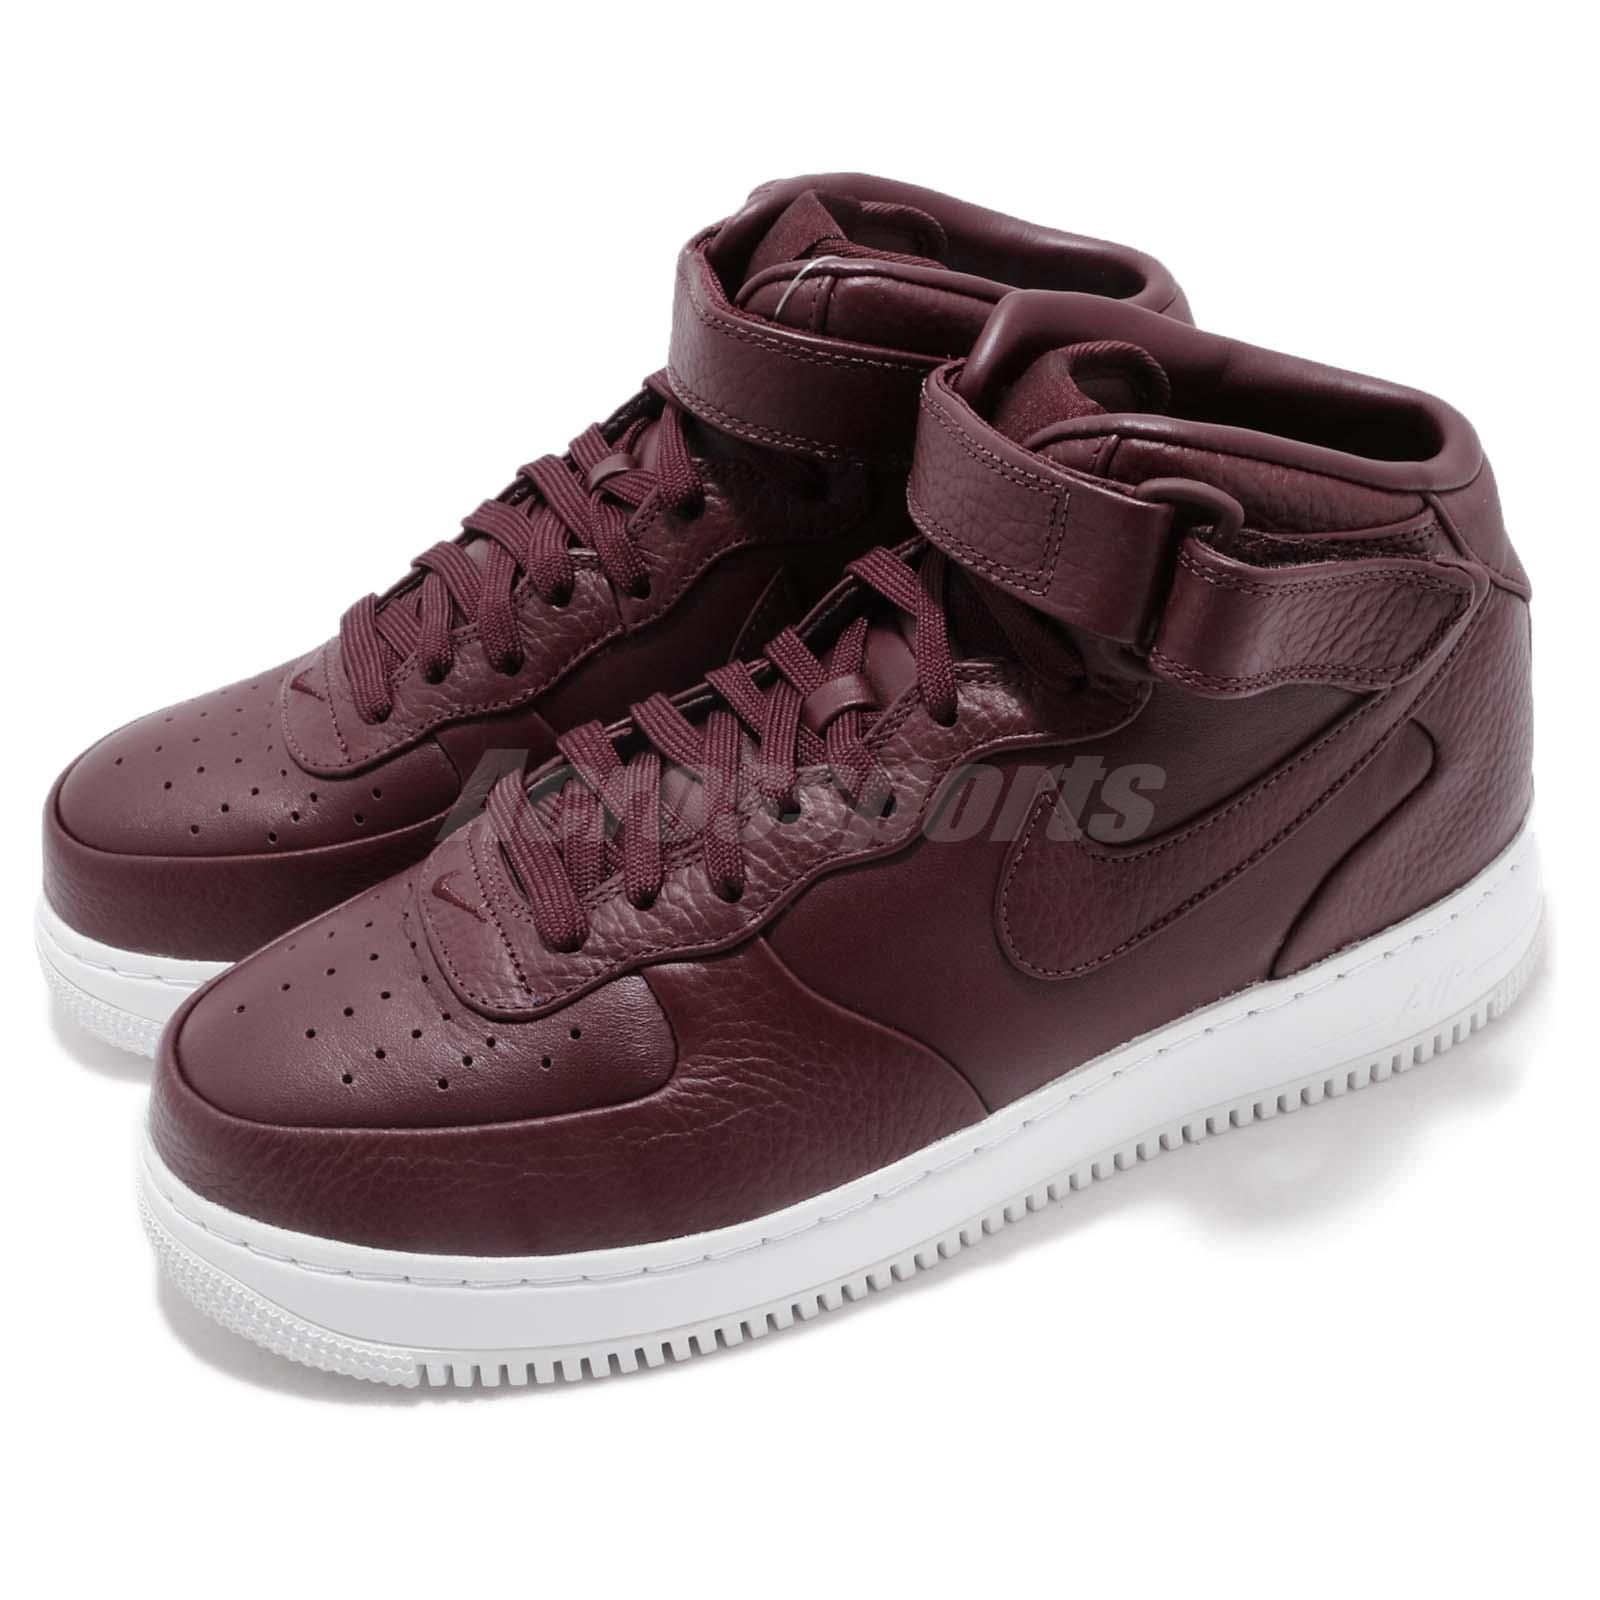 prix d'usine 4744a aaa52 Details about Nike NikeLab Air Force 1 Mid AF1 Night Maroon White Men Shoes  Sneaker 819677-661